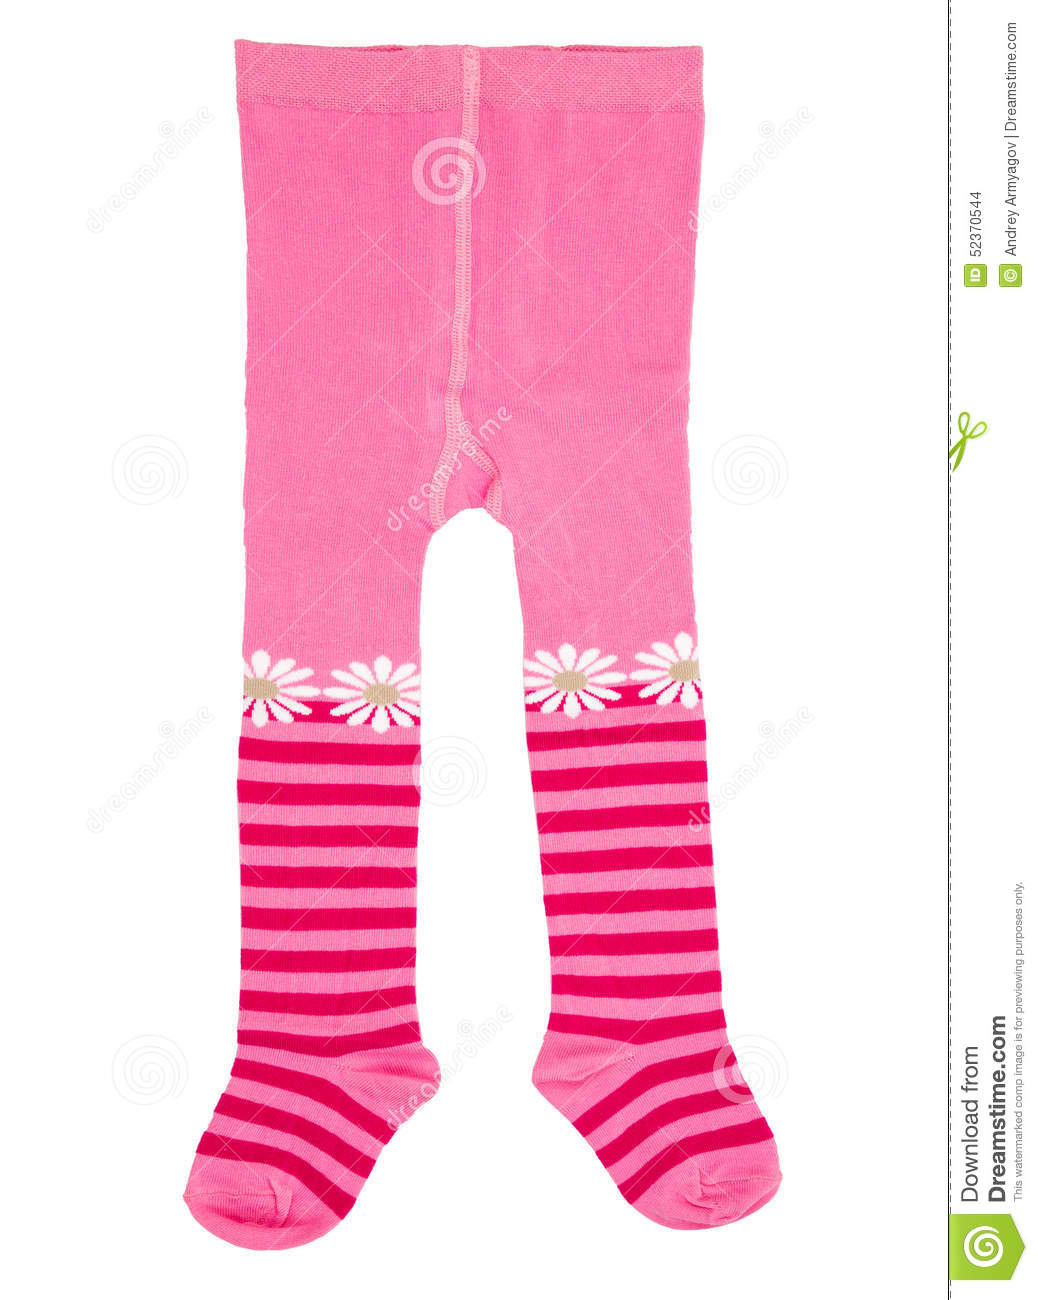 Infant Tights Stock Photo.